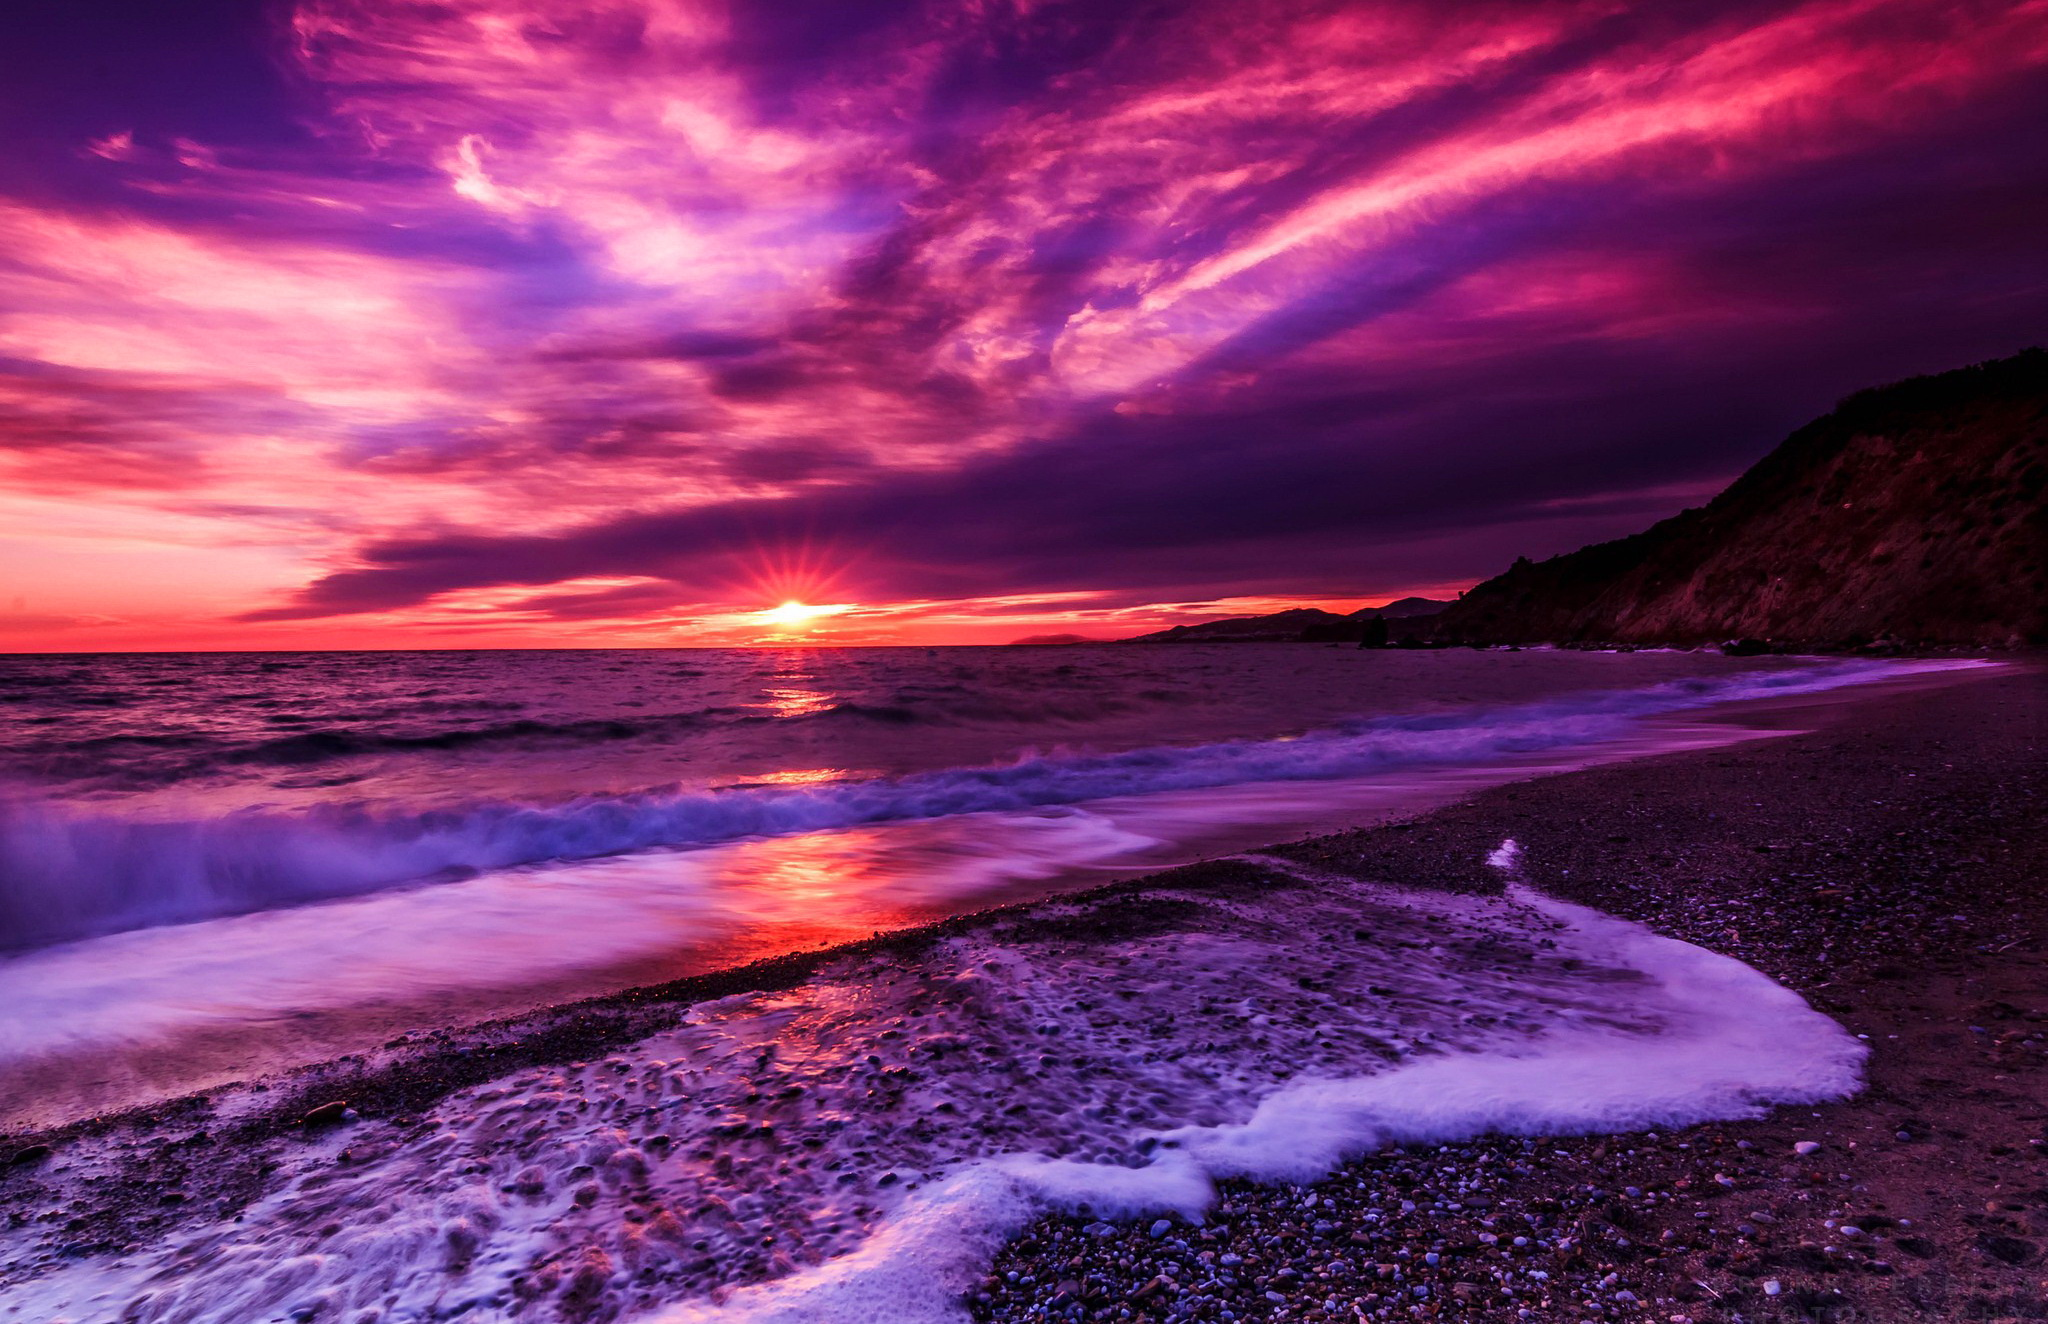 Purple Beach Sunset Hd Wallpaper Background Image